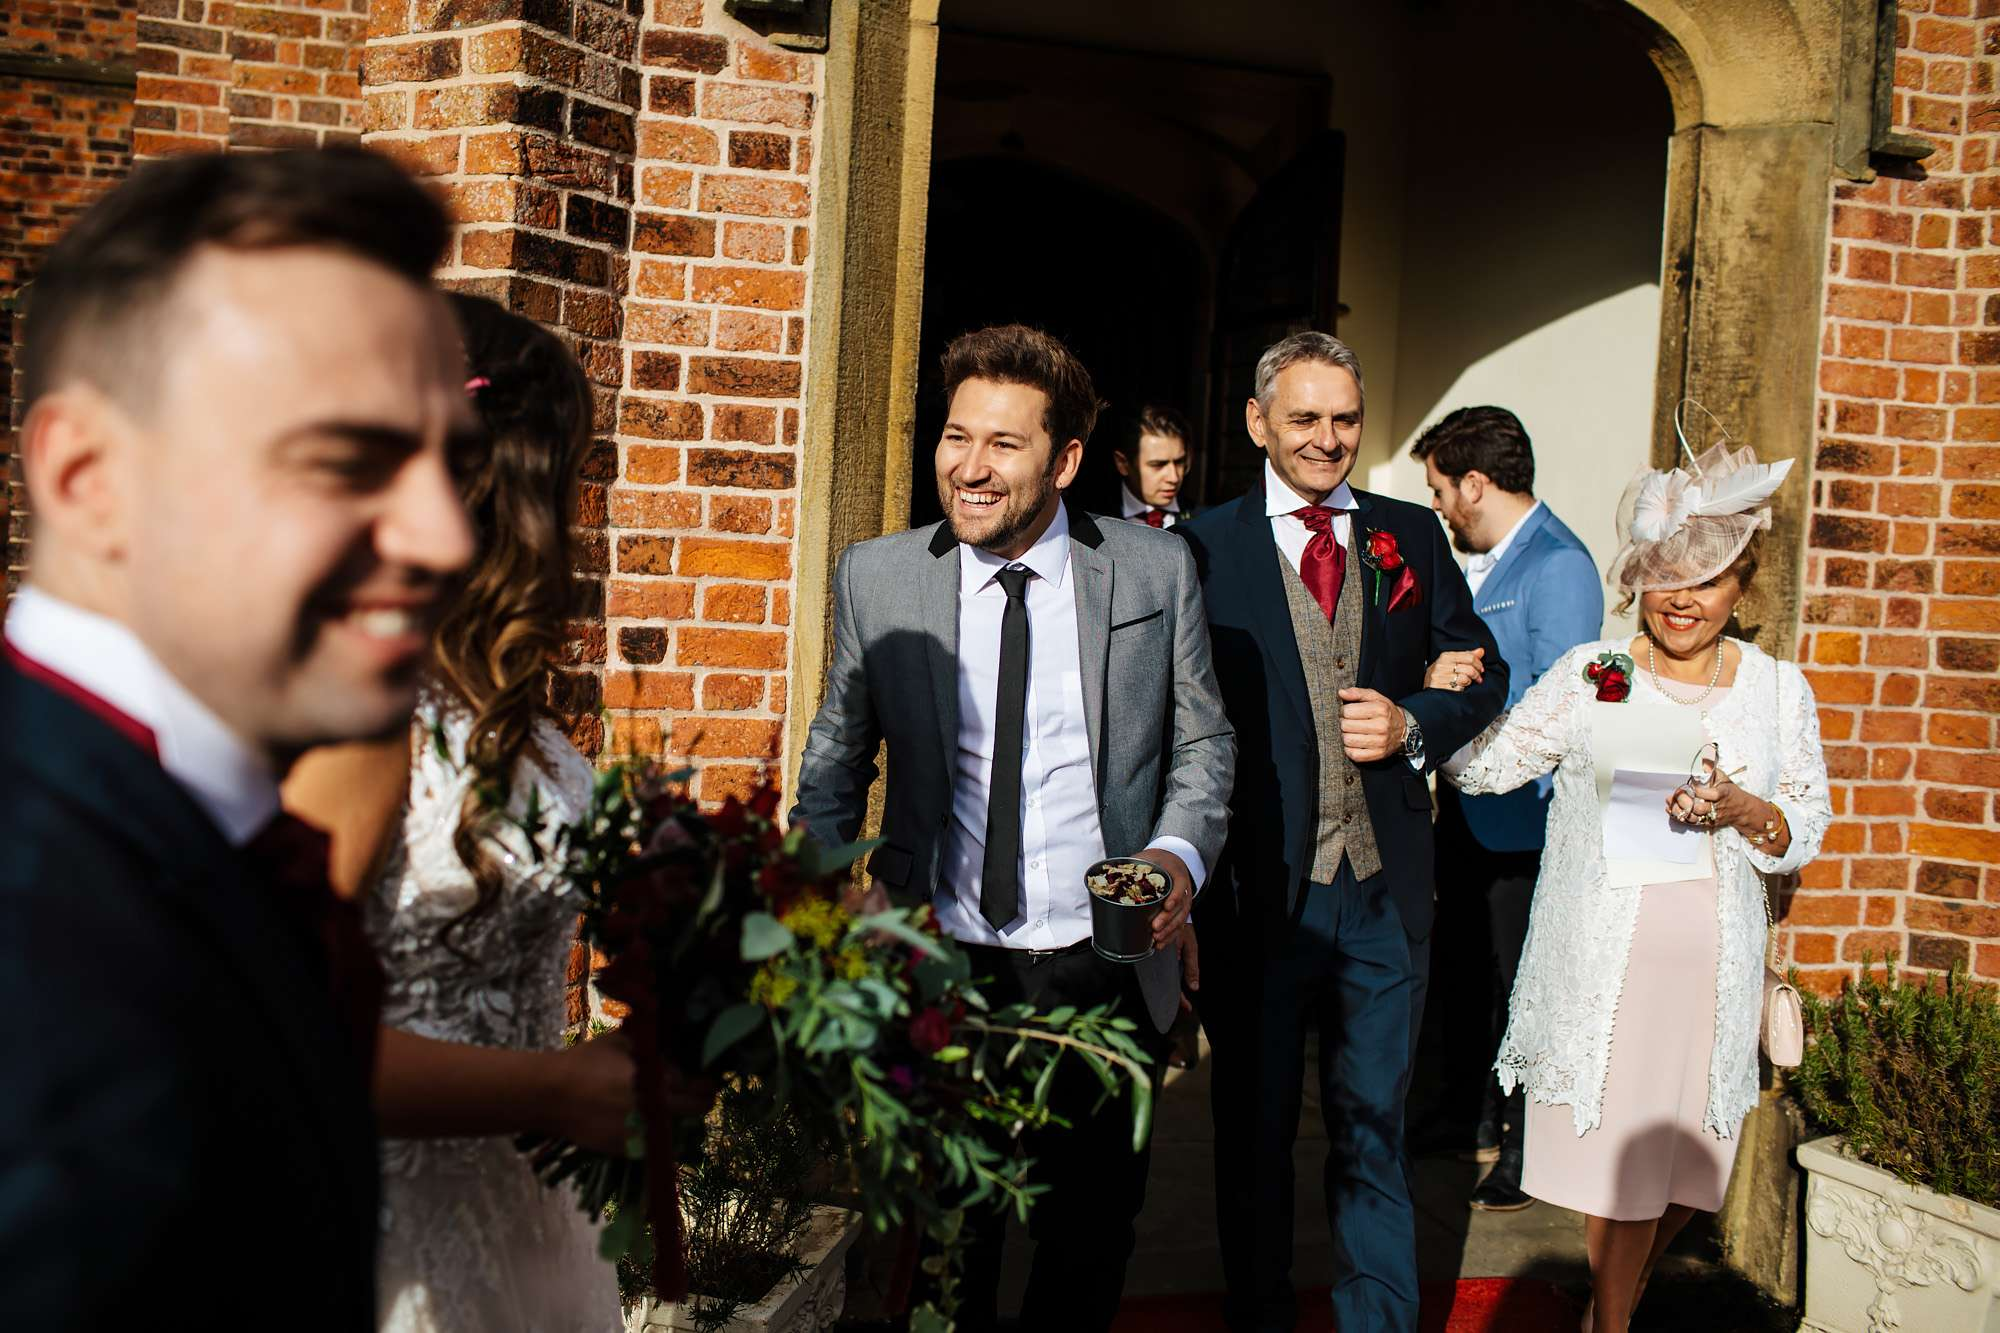 Wedding guests exit the church in Blackpool